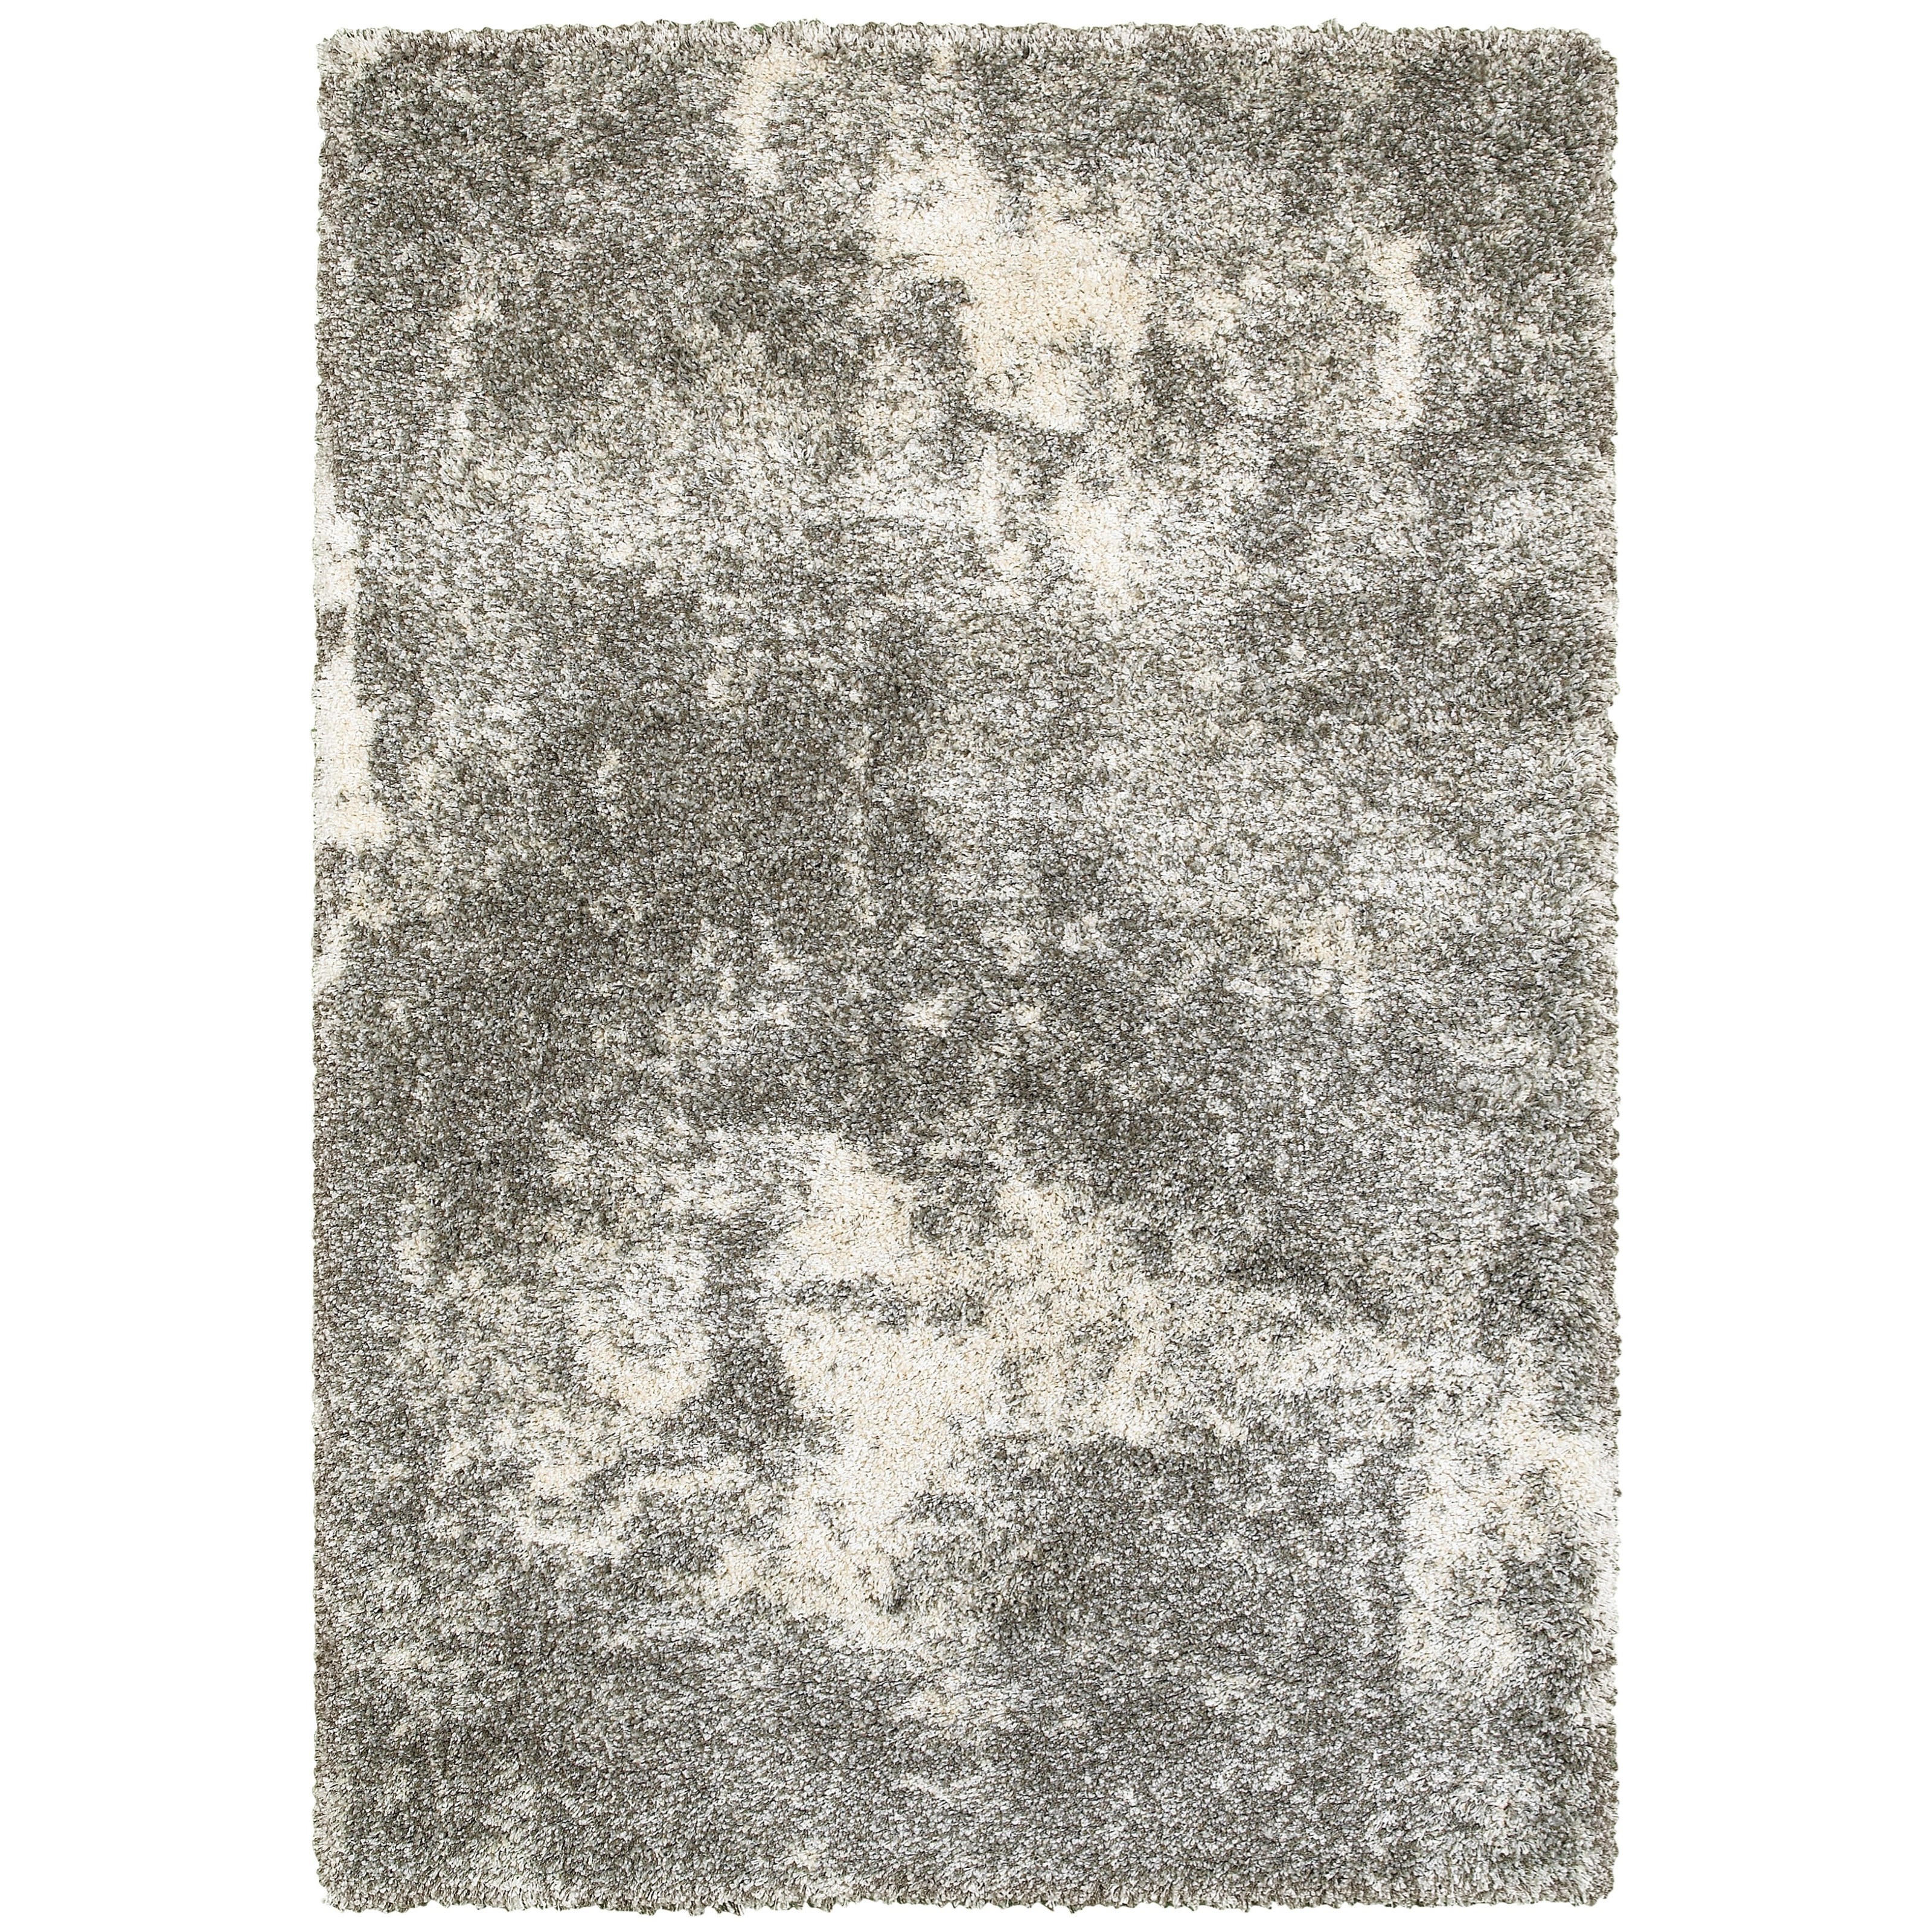 """Henderson 7'10"""" X 10'10"""" Shag Grey/ Ivory Rectangle Ru by Oriental Weavers at Miller Waldrop Furniture and Decor"""